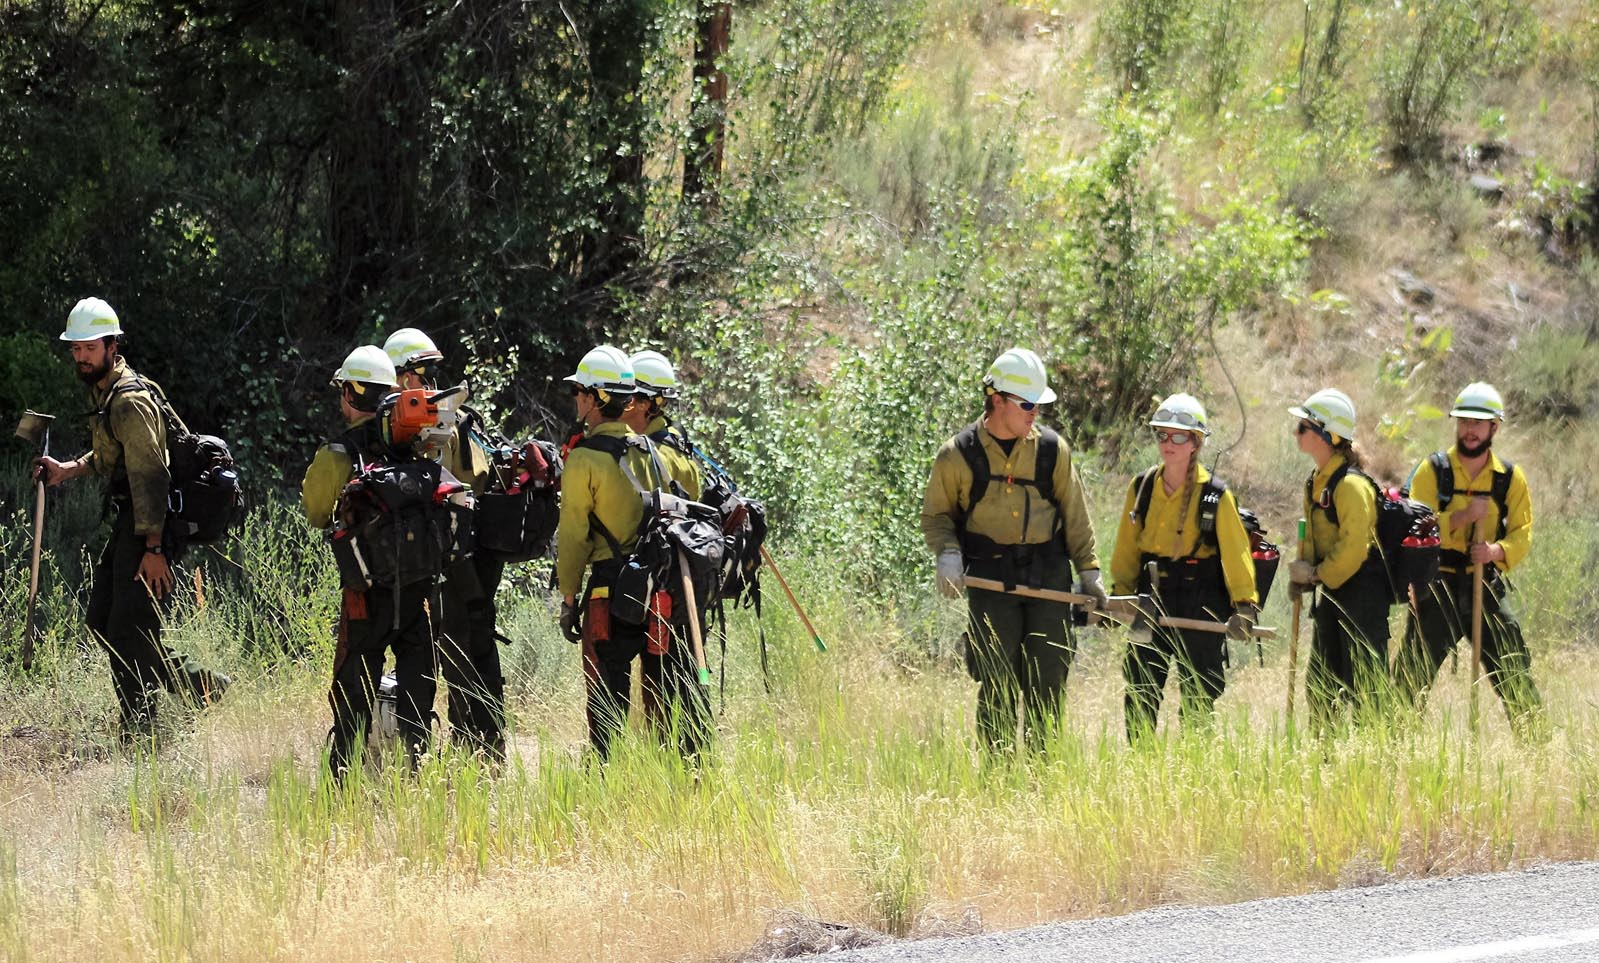 Firefighters just arriving on scene prepare to deploy along the fire line.